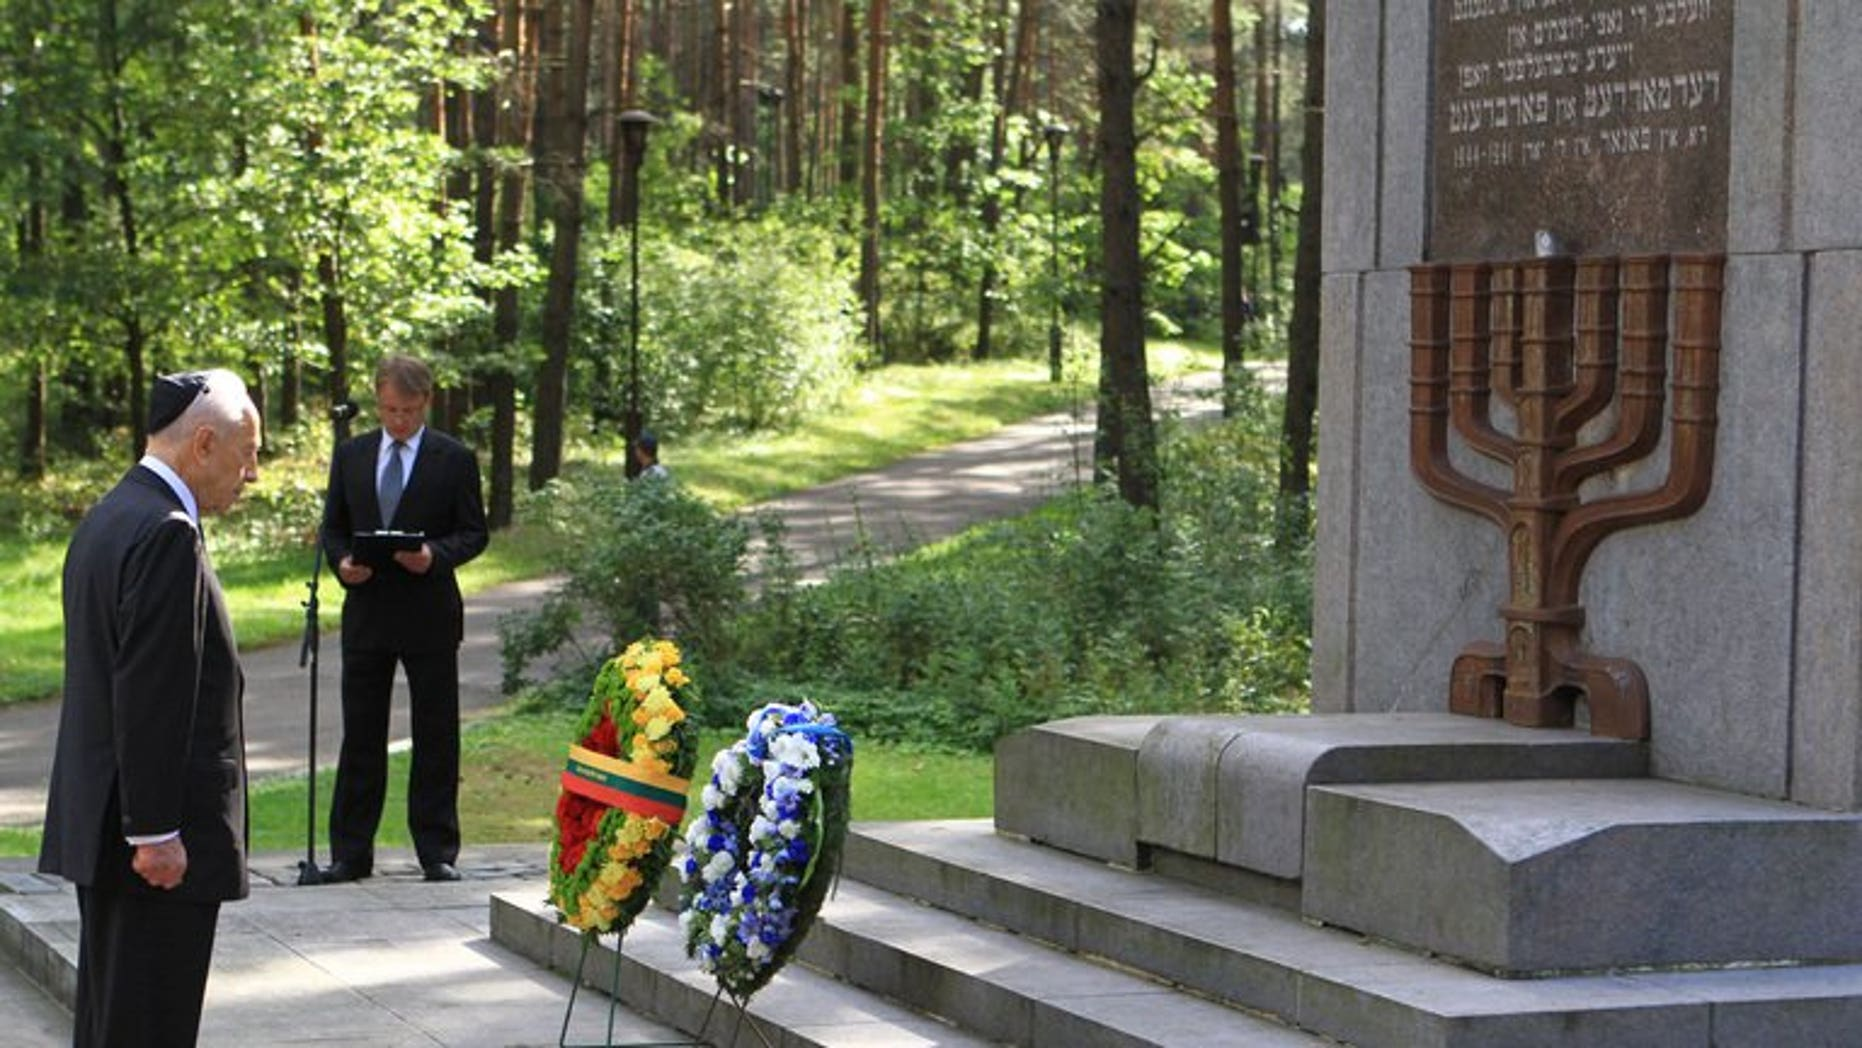 Israeli President Shimon Peres pays his respect after laying a wreath at the Paneriai memorial in Vilnius, on August 1, 2013.